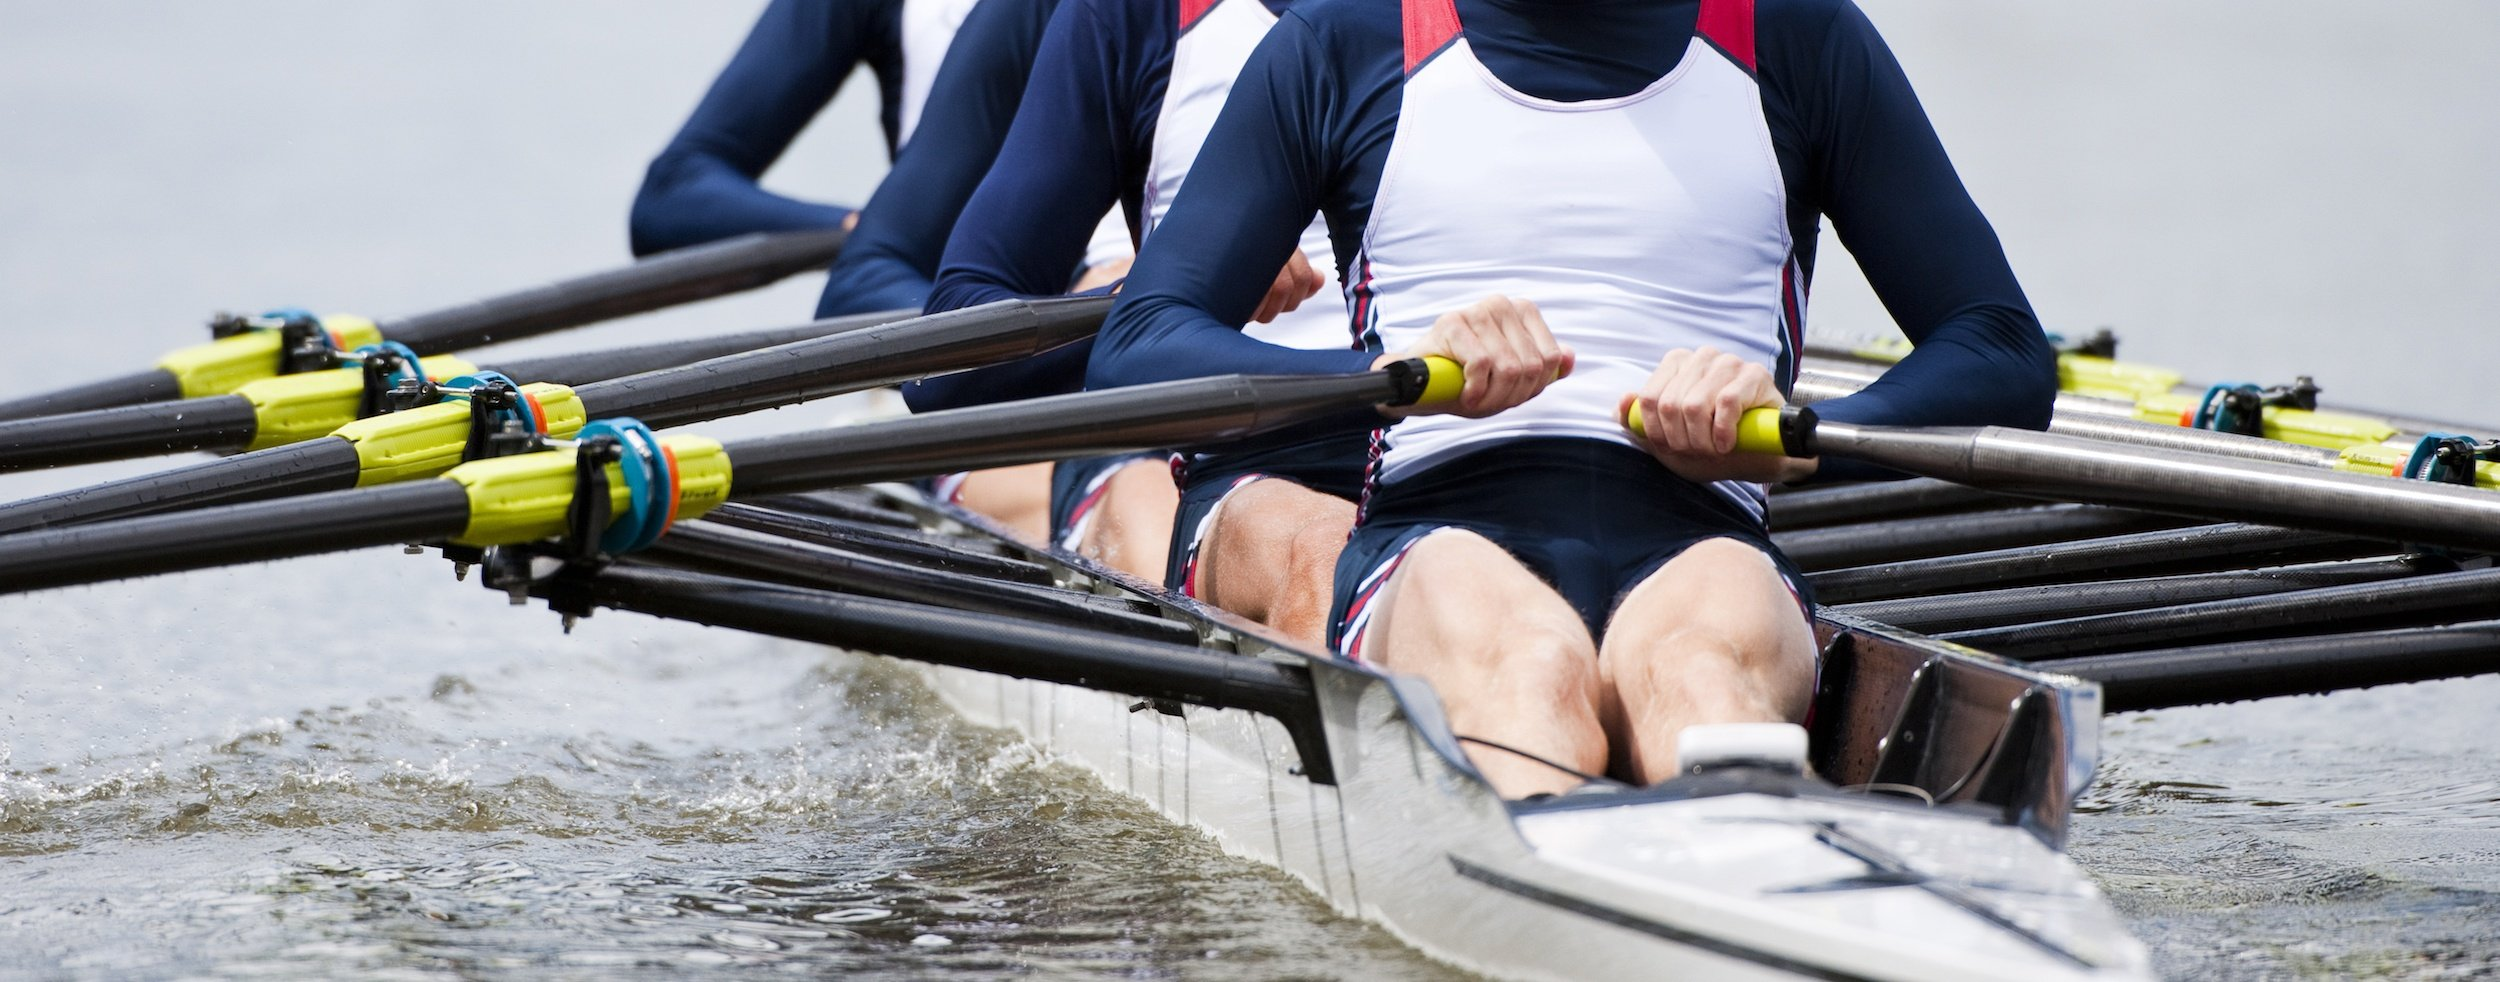 Franchisor franchisee rowing in same direction